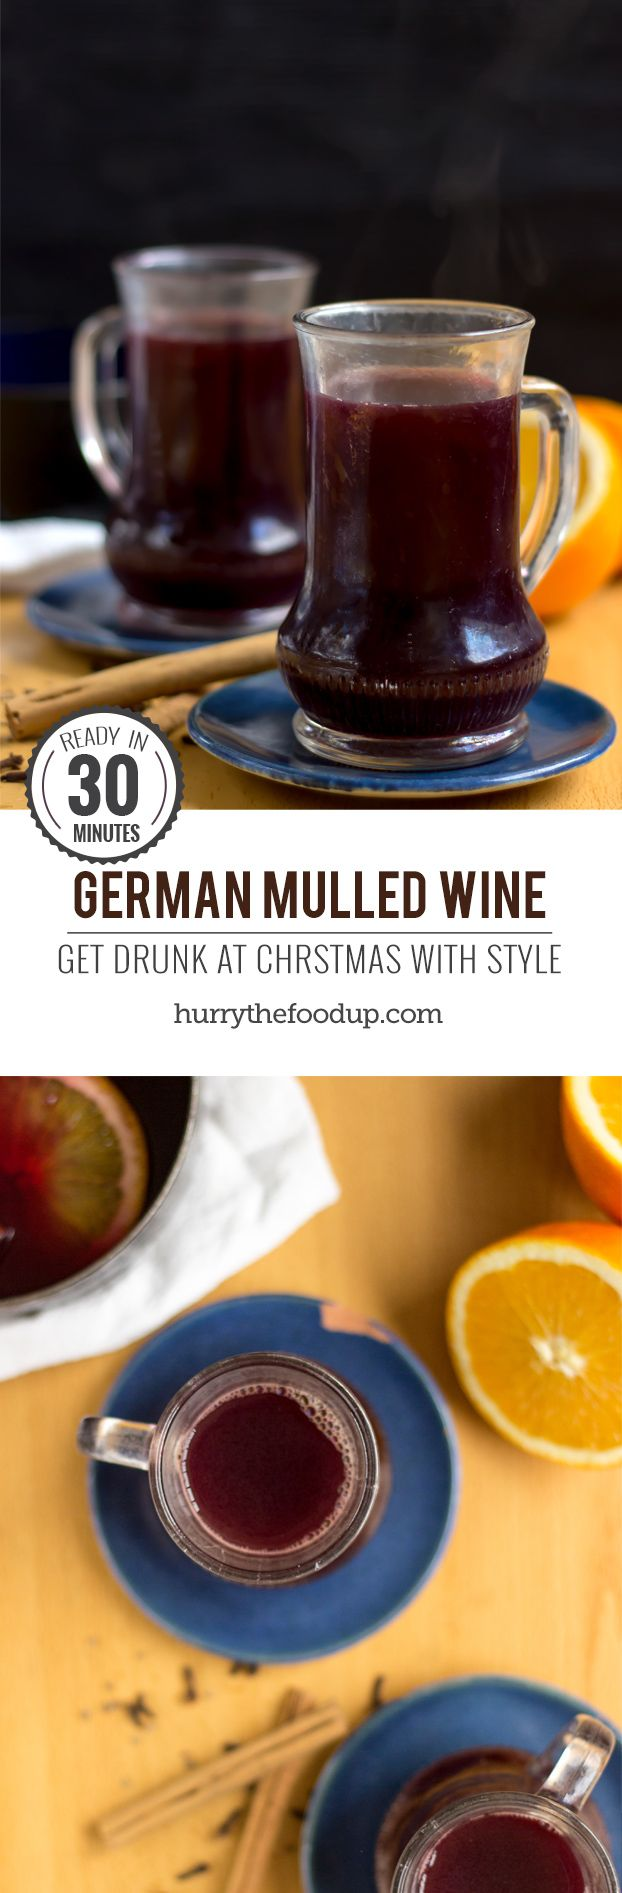 Traditional German Mulled Wine. Ready to drink in 30 minutes   #wine #christmasdrinks   hurrythefoodup.com